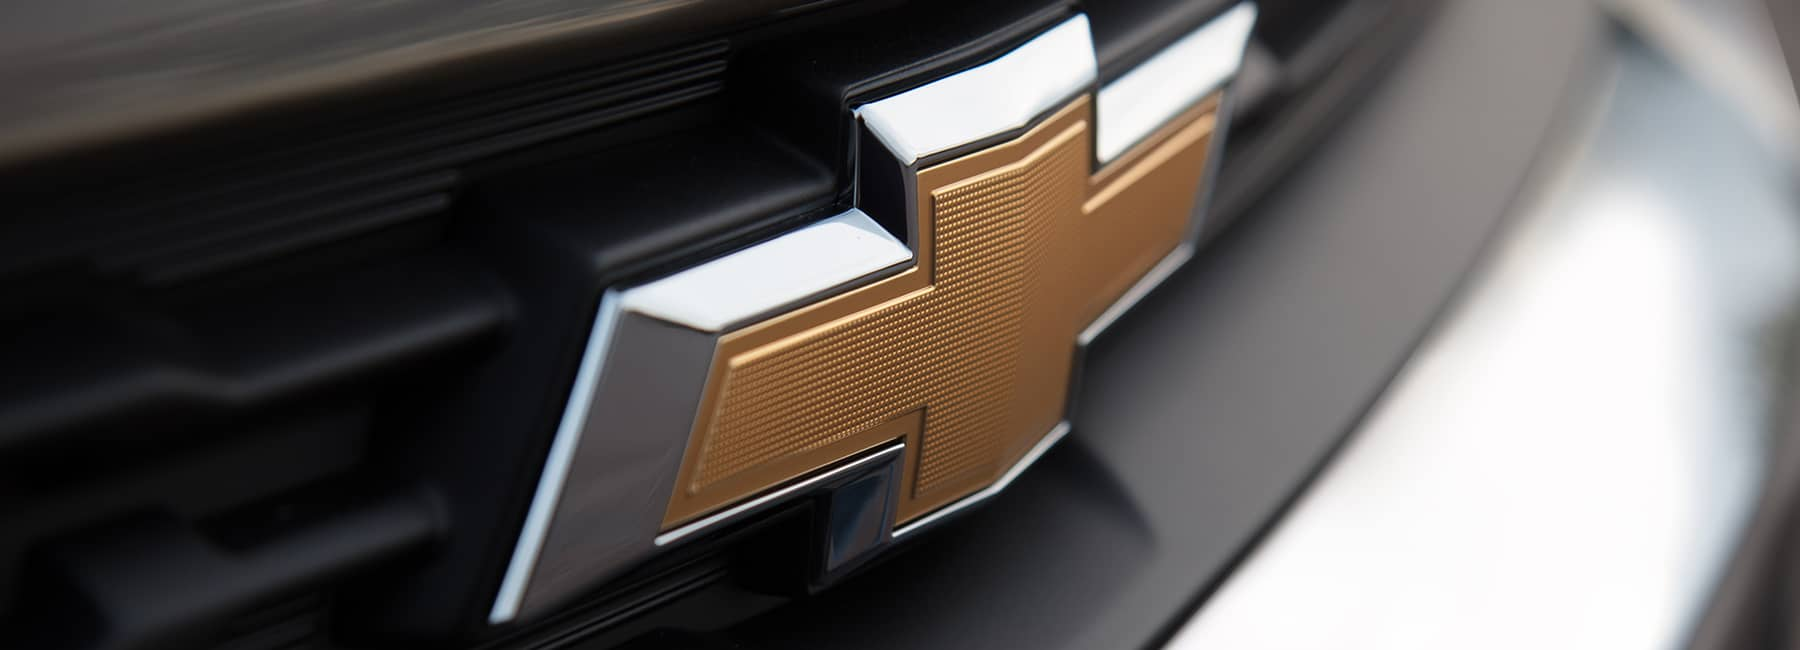 Chevrolet emblem on the front of a truck.